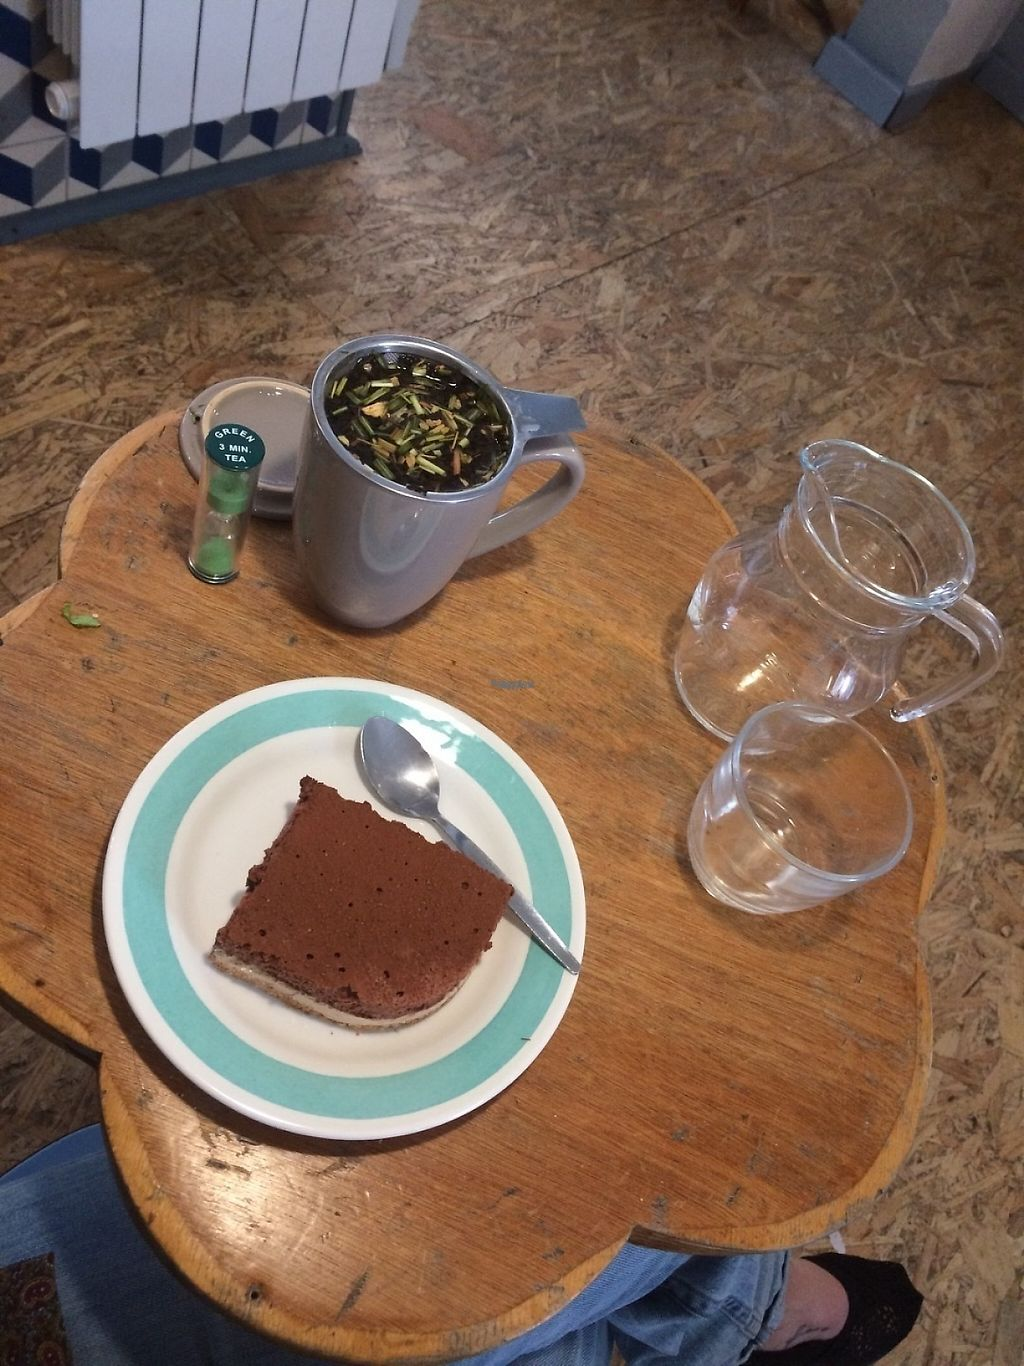 "Photo of La Face B  by <a href=""/members/profile/ConsciousEarthling"">ConsciousEarthling</a> <br/>Speculoos/Chocolate mousse and lemon ginger tea  <br/> April 4, 2017  - <a href='/contact/abuse/image/76902/244759'>Report</a>"